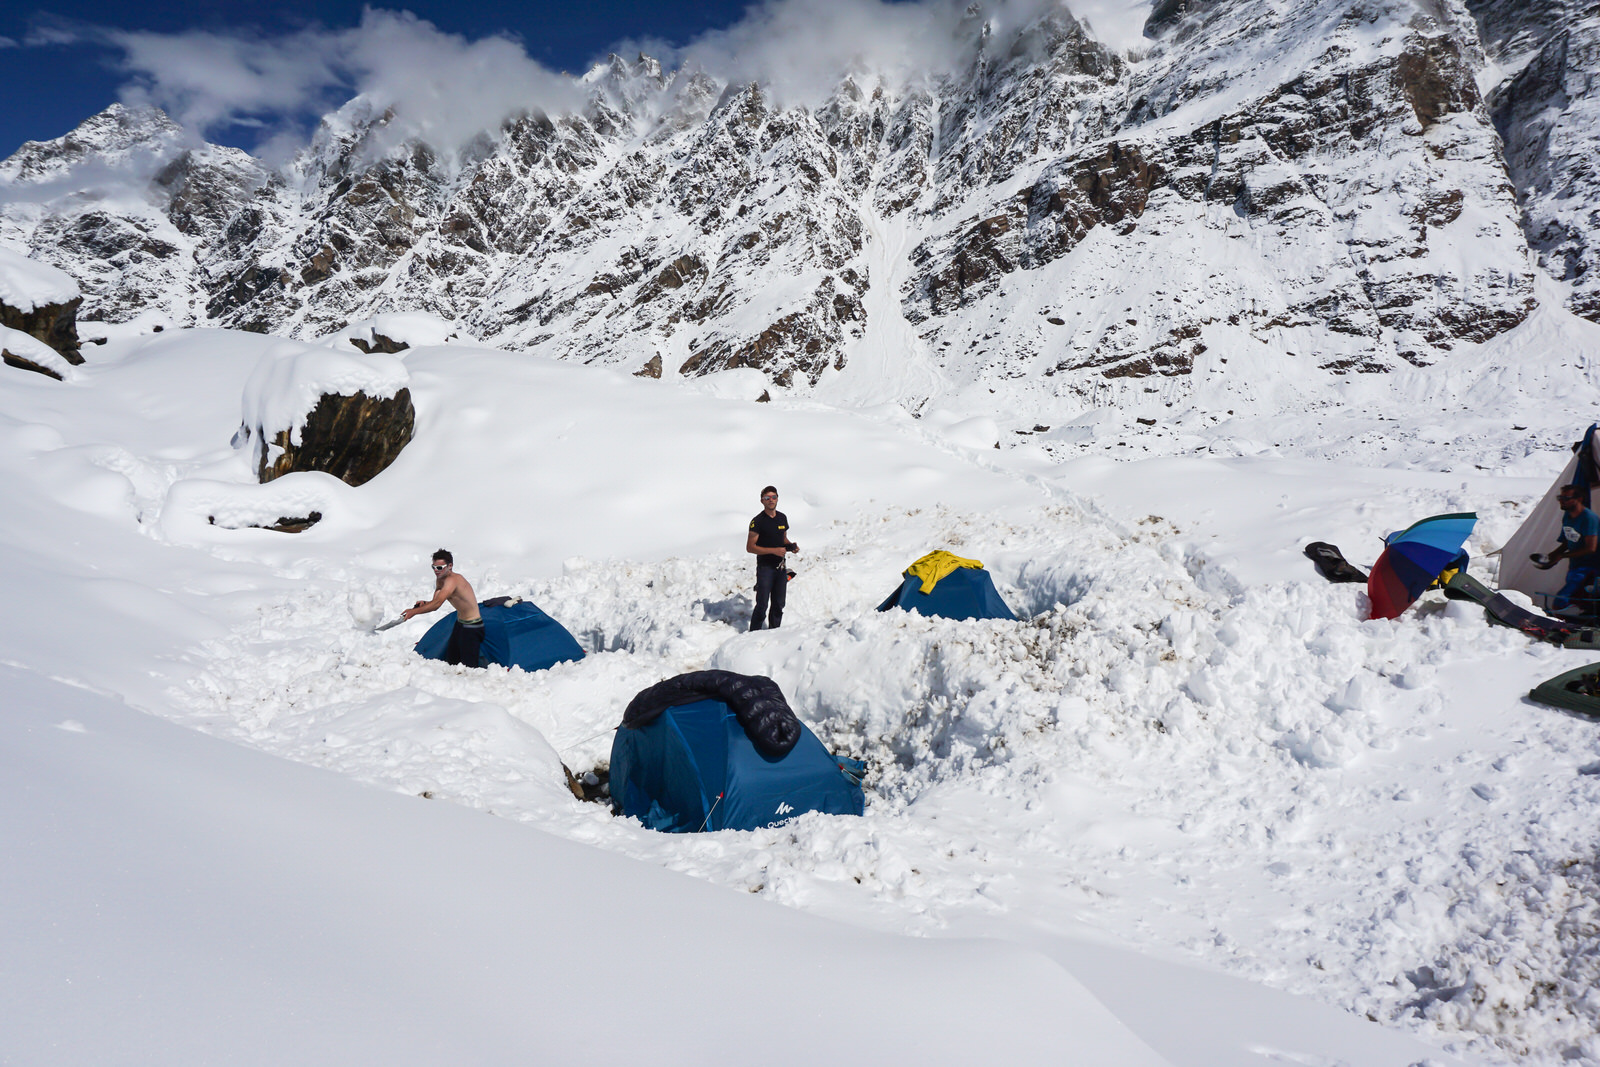 hagshu base camp. Jammu and Kashmir, India.